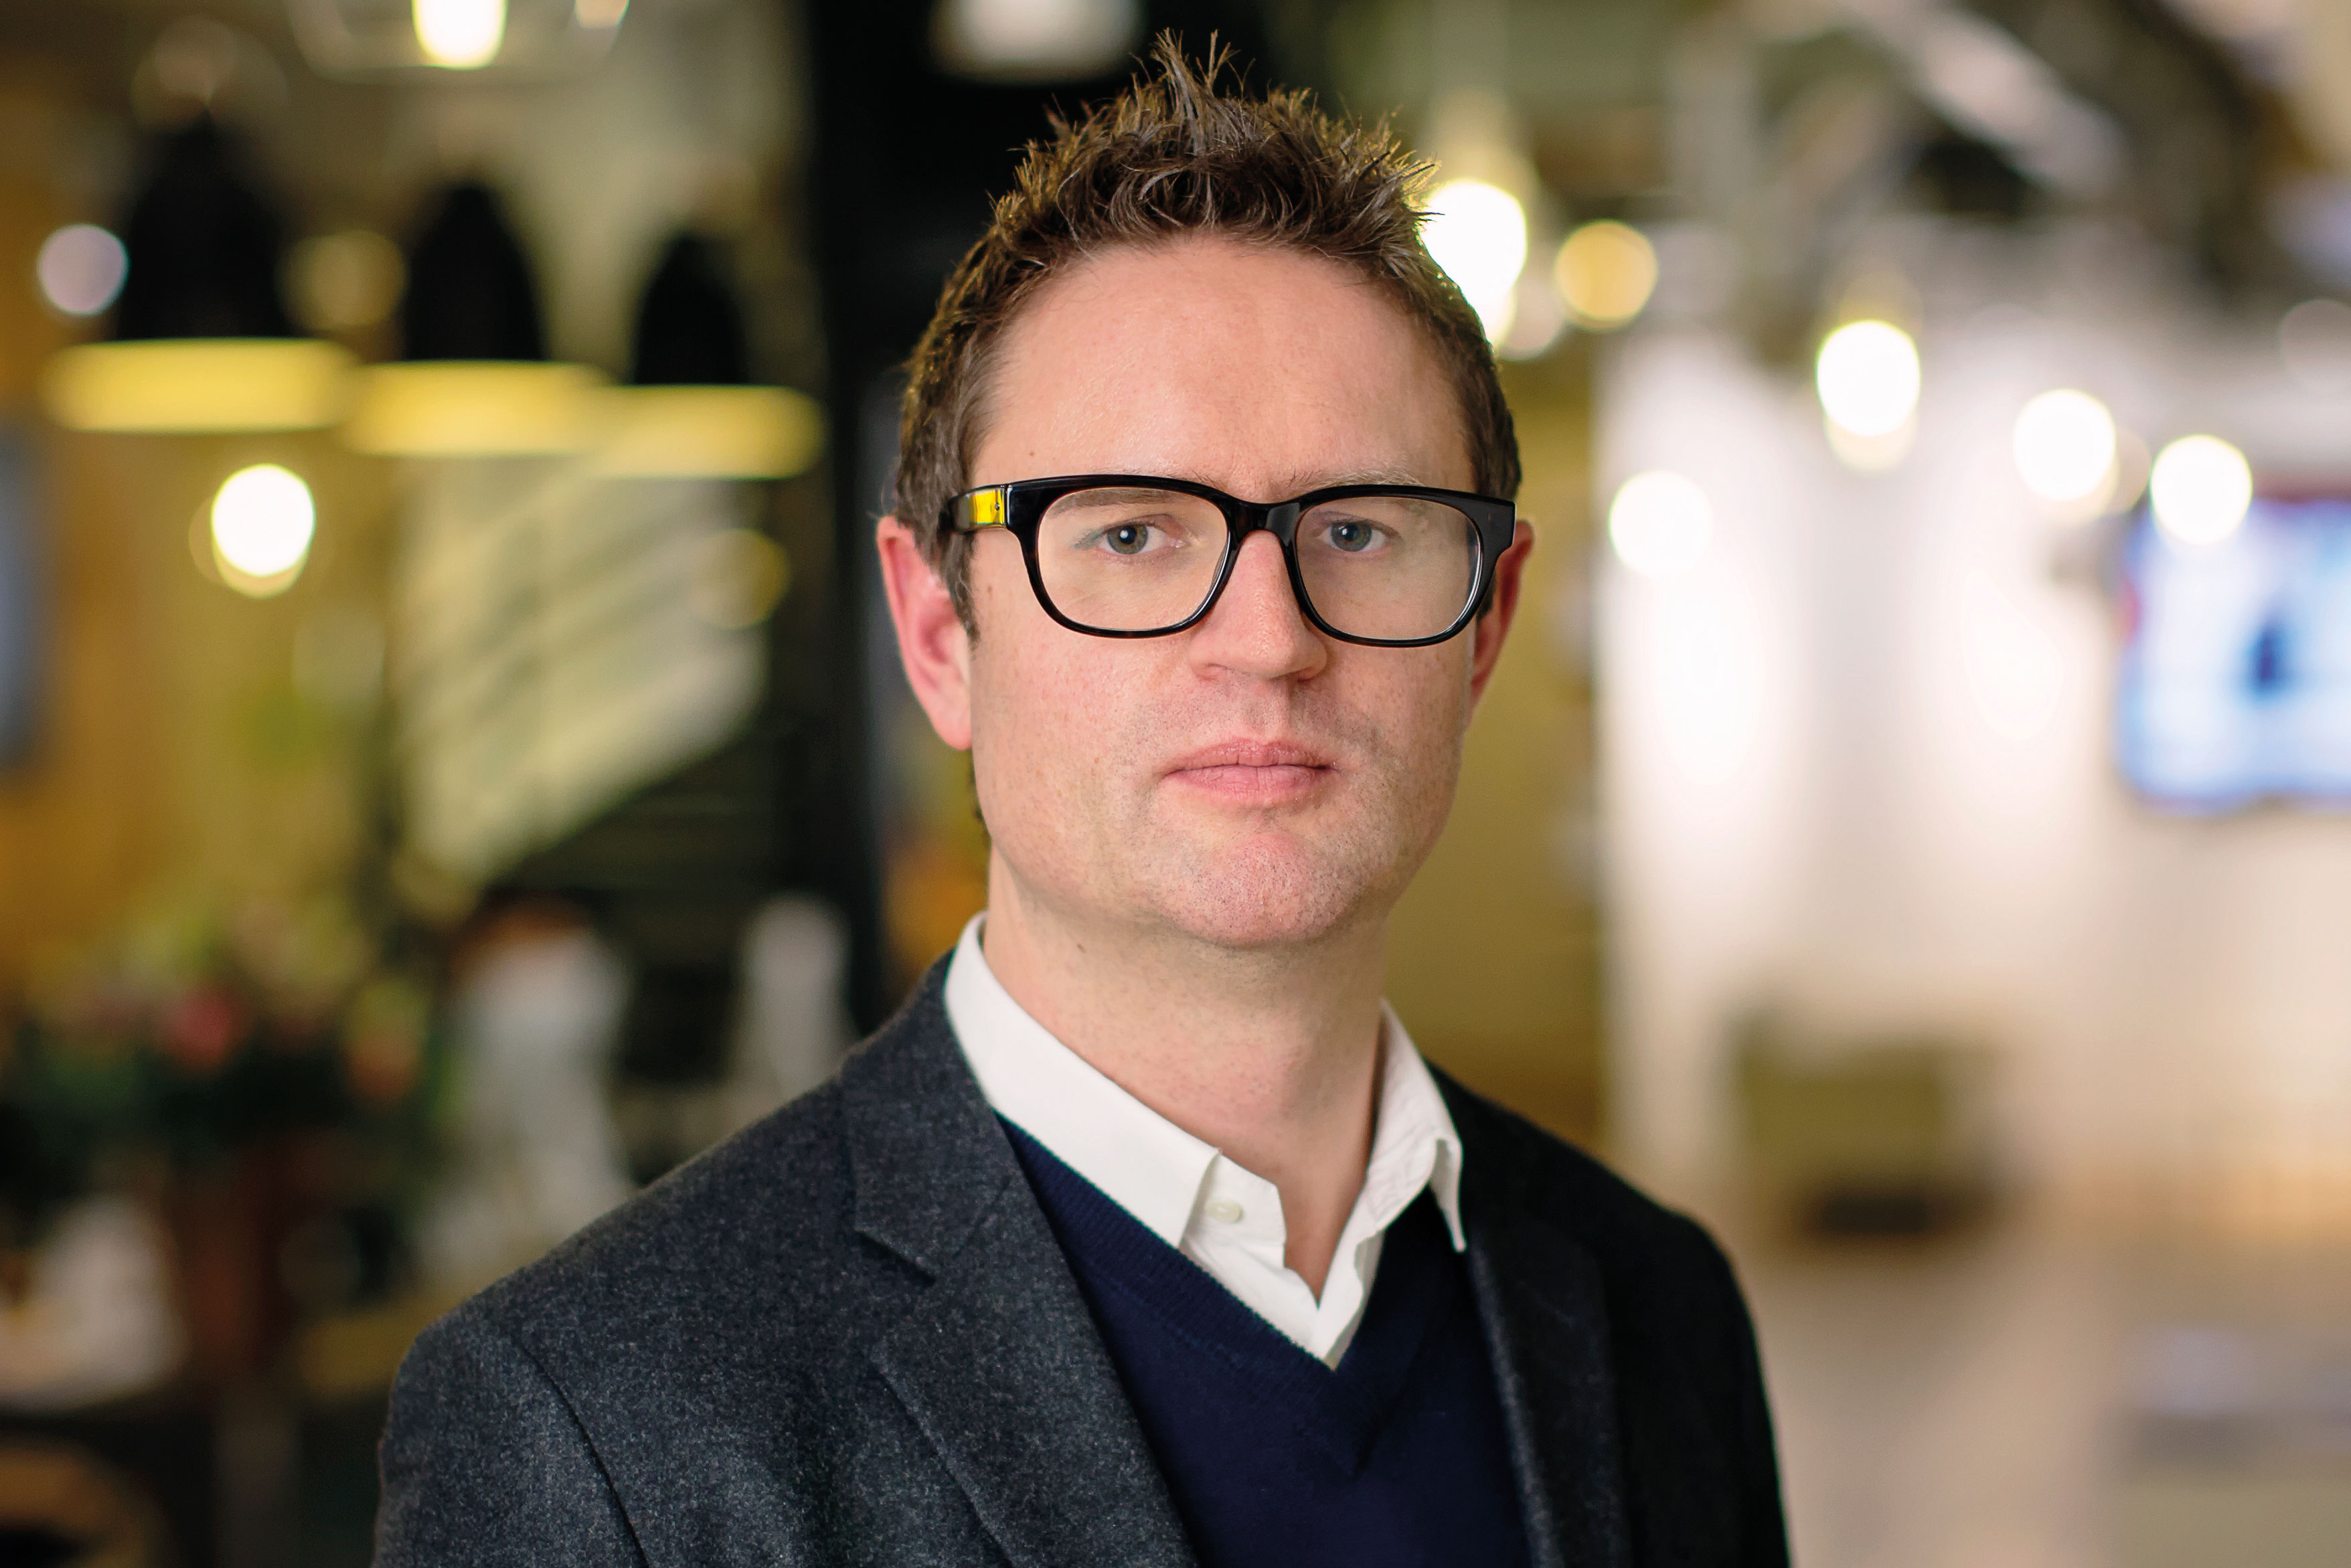 David Golding, co-founder and chief strategy officer, Adam & Eve/DDB